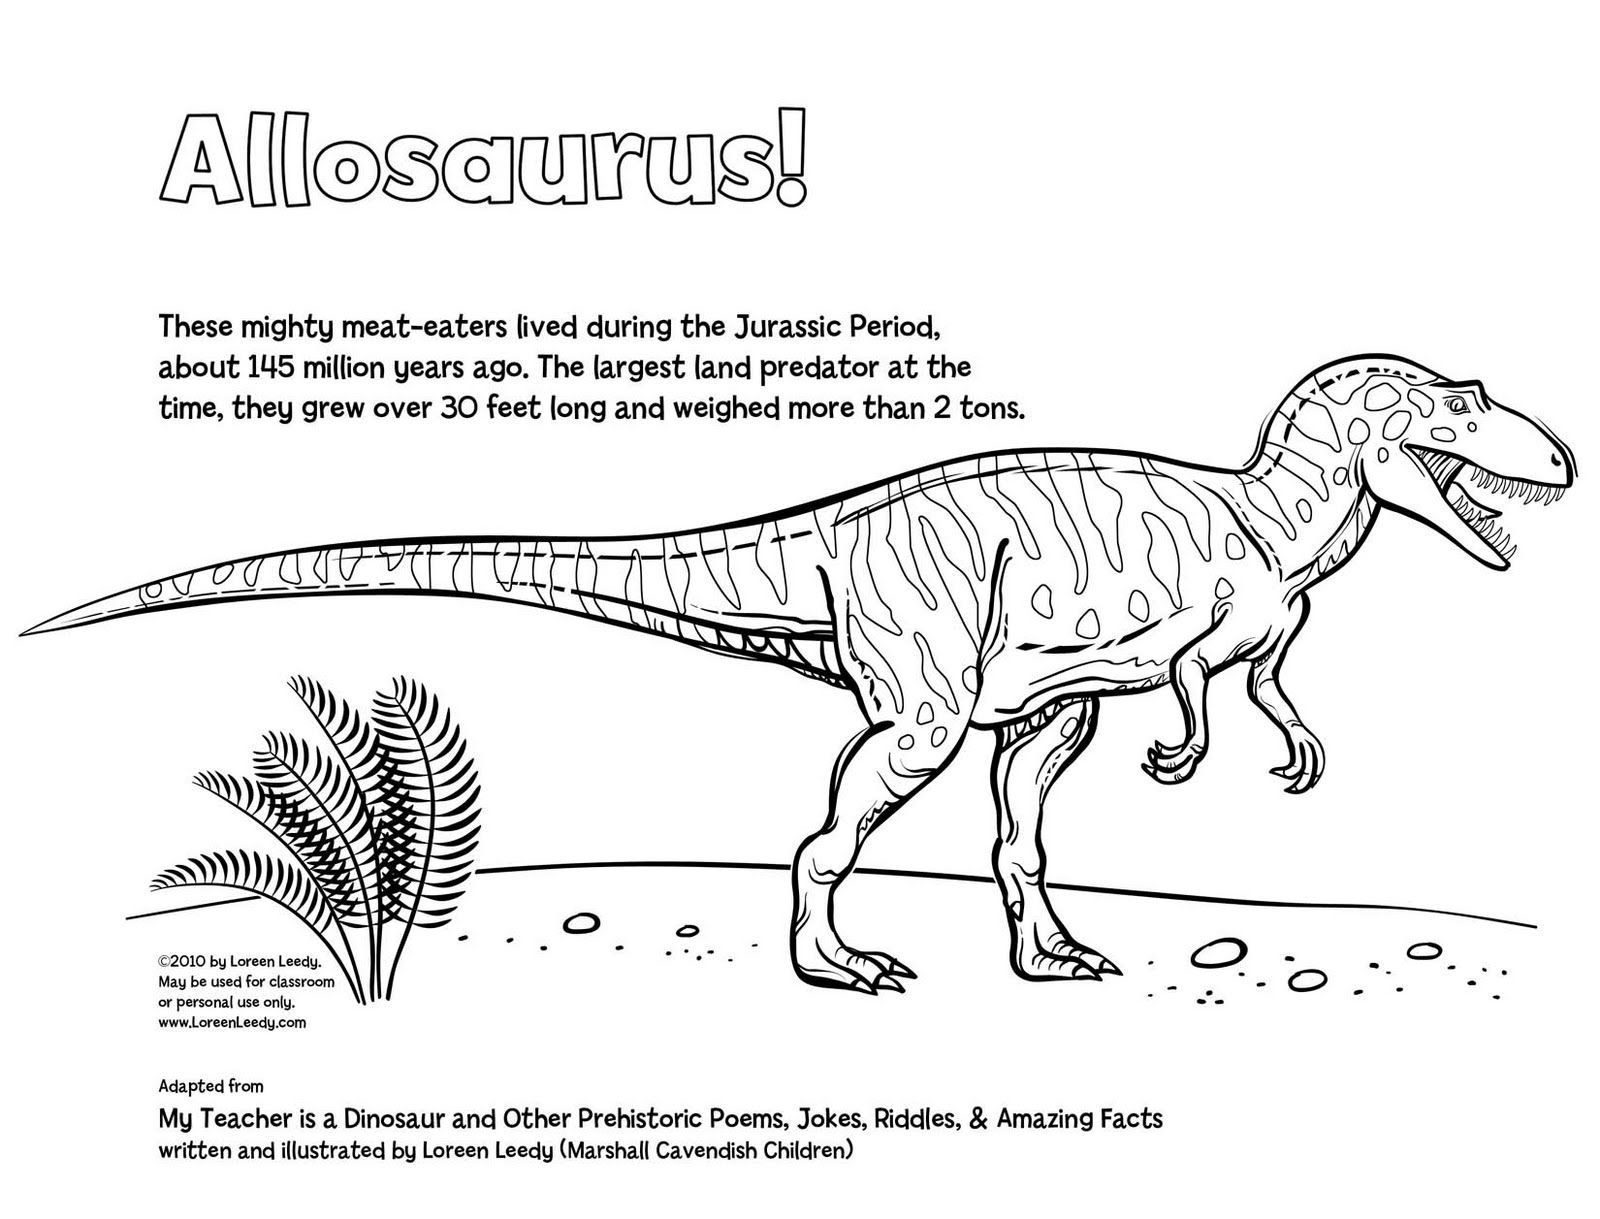 allosaurus coloring pages - photo#17